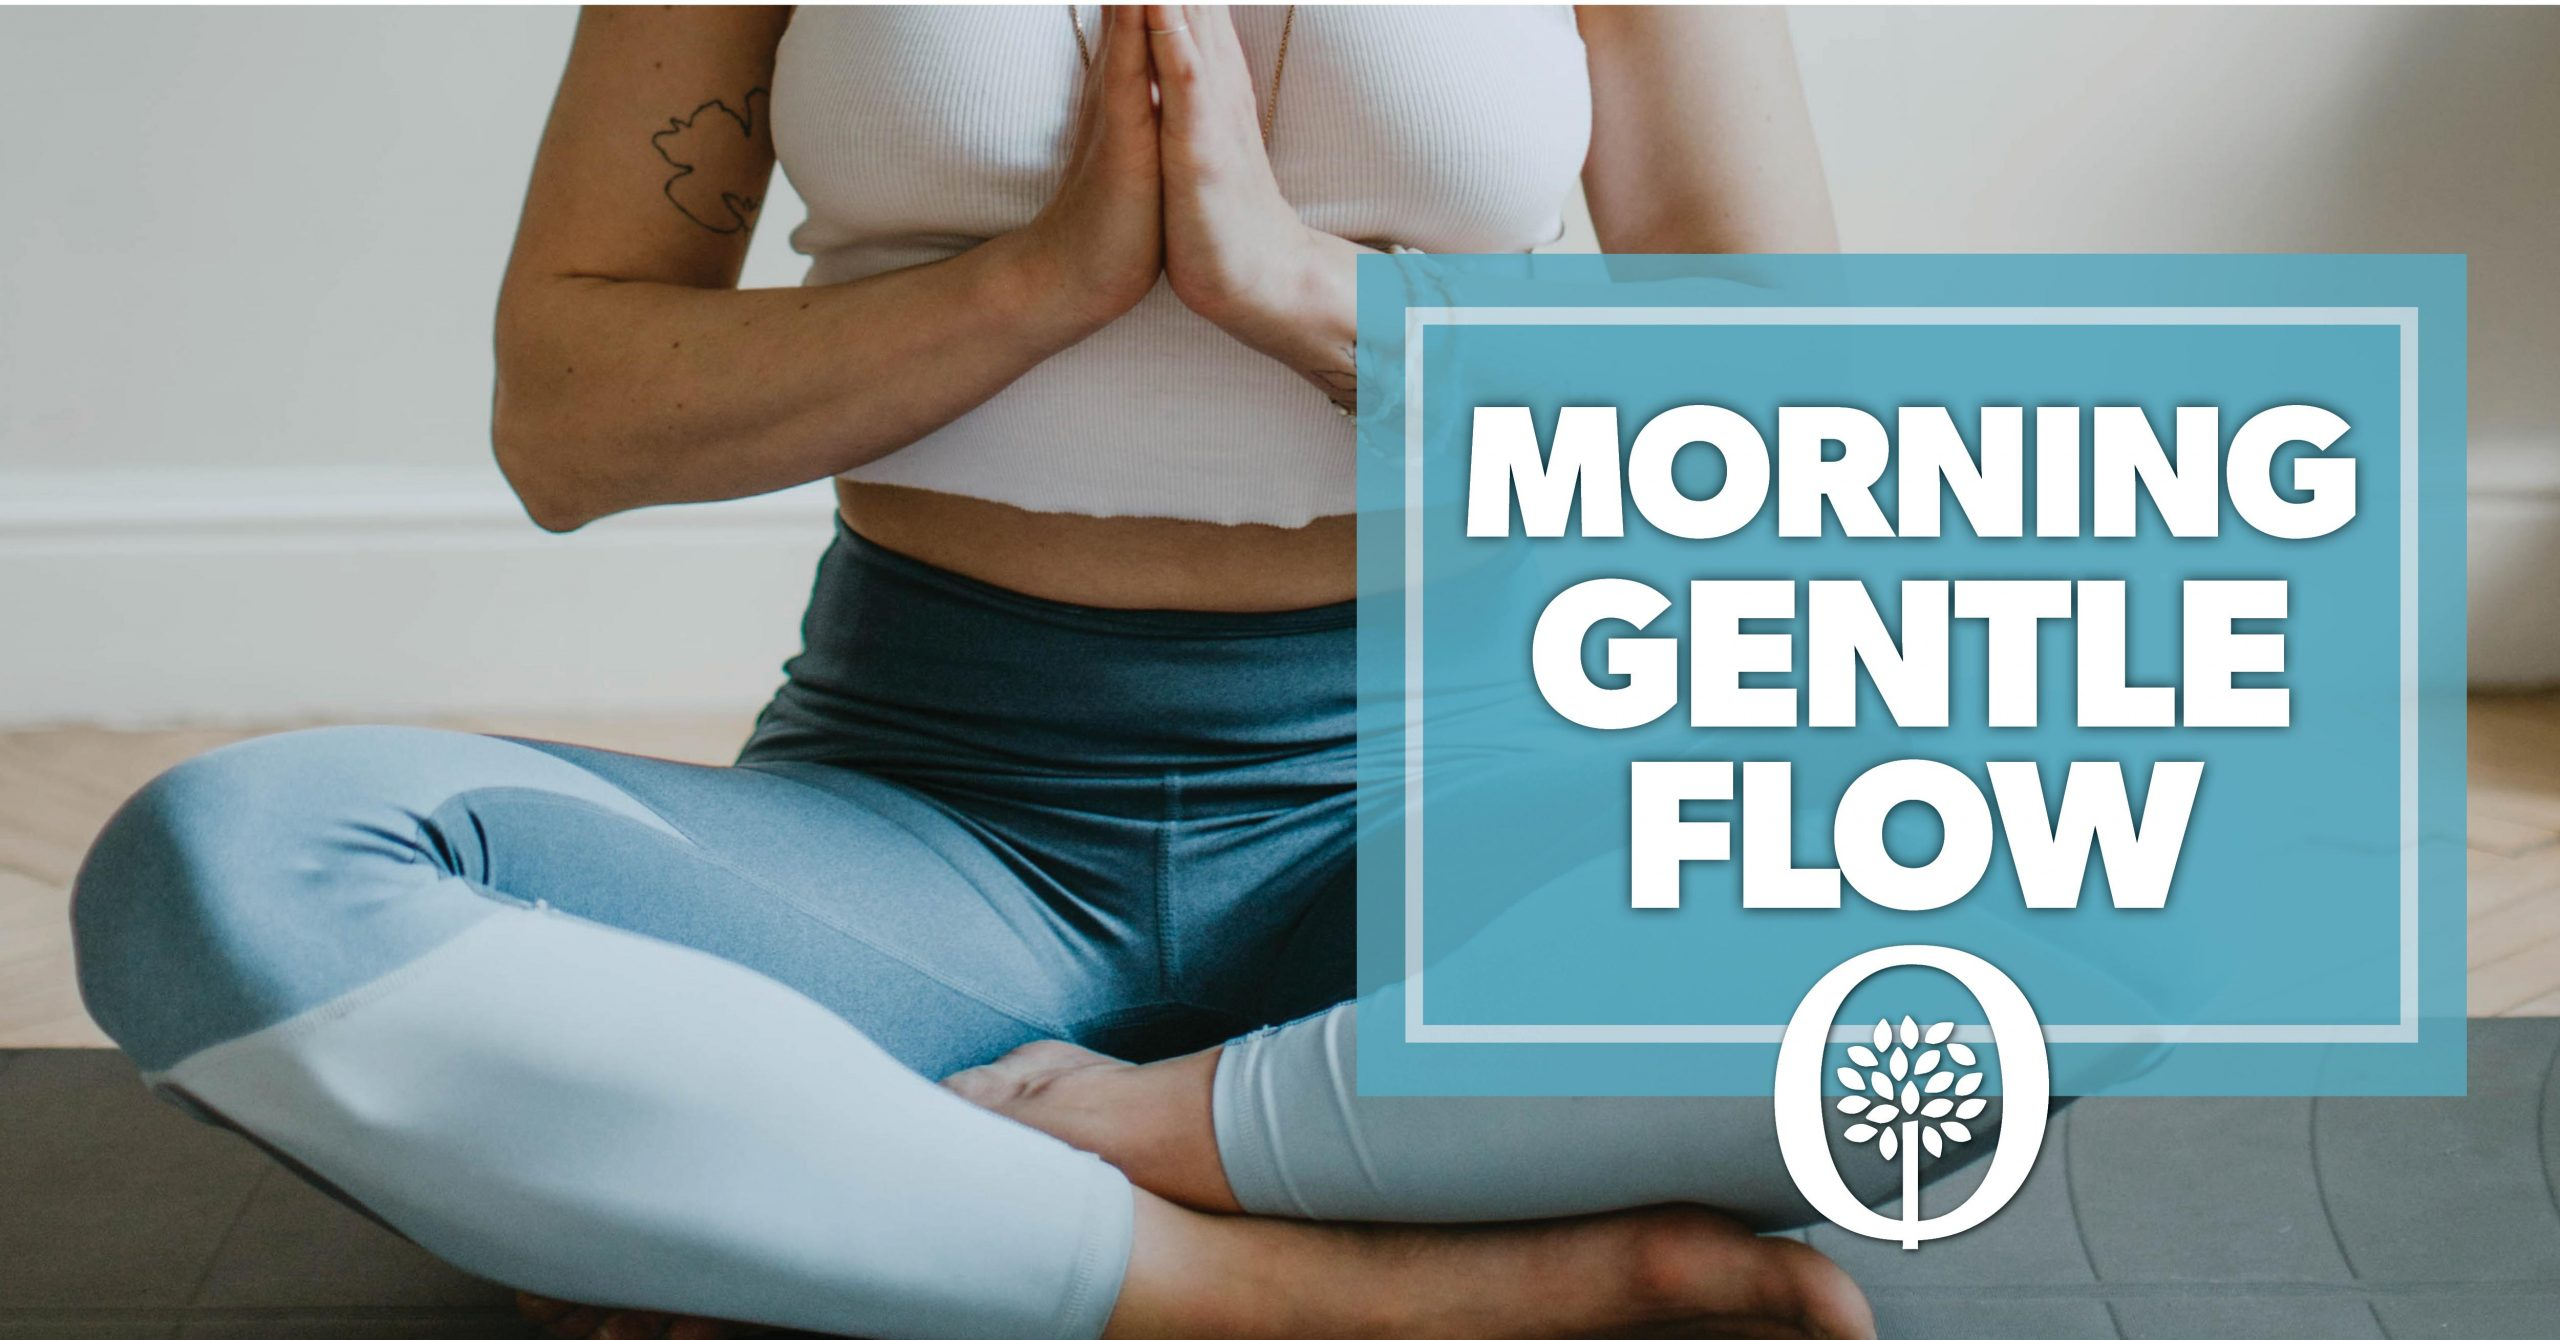 Morning Gentle Flow Yoga header photo